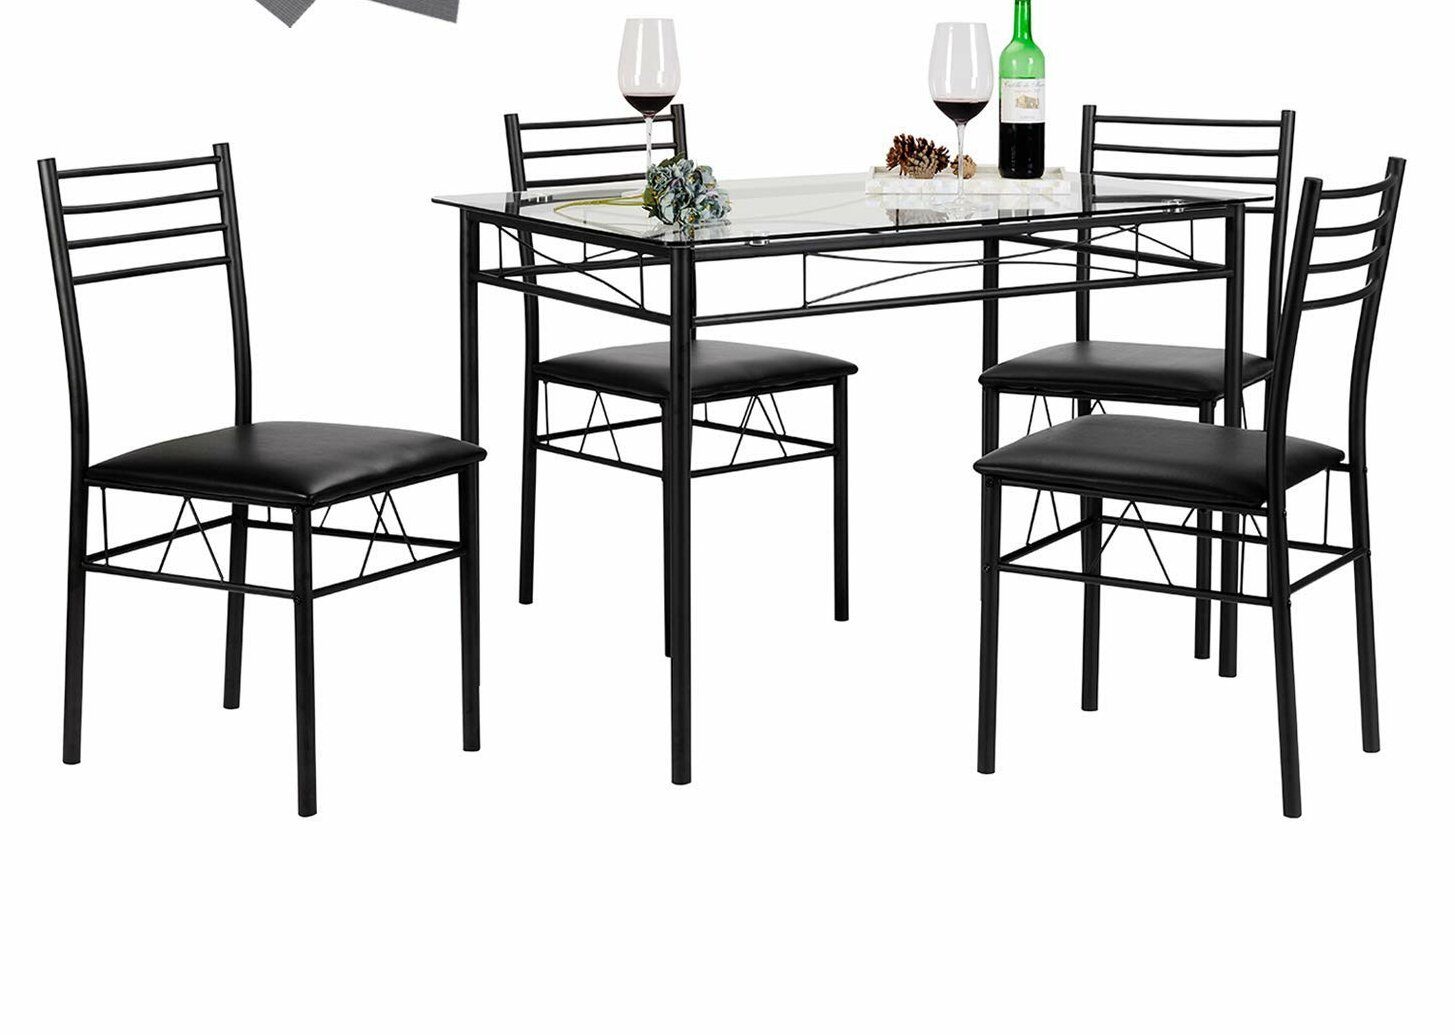 Well Known Ebern Designs Lightle 5 Piece Breakfast Nook Dining Set & Reviews With Regard To Liles 5 Piece Breakfast Nook Dining Sets (#19 of 20)